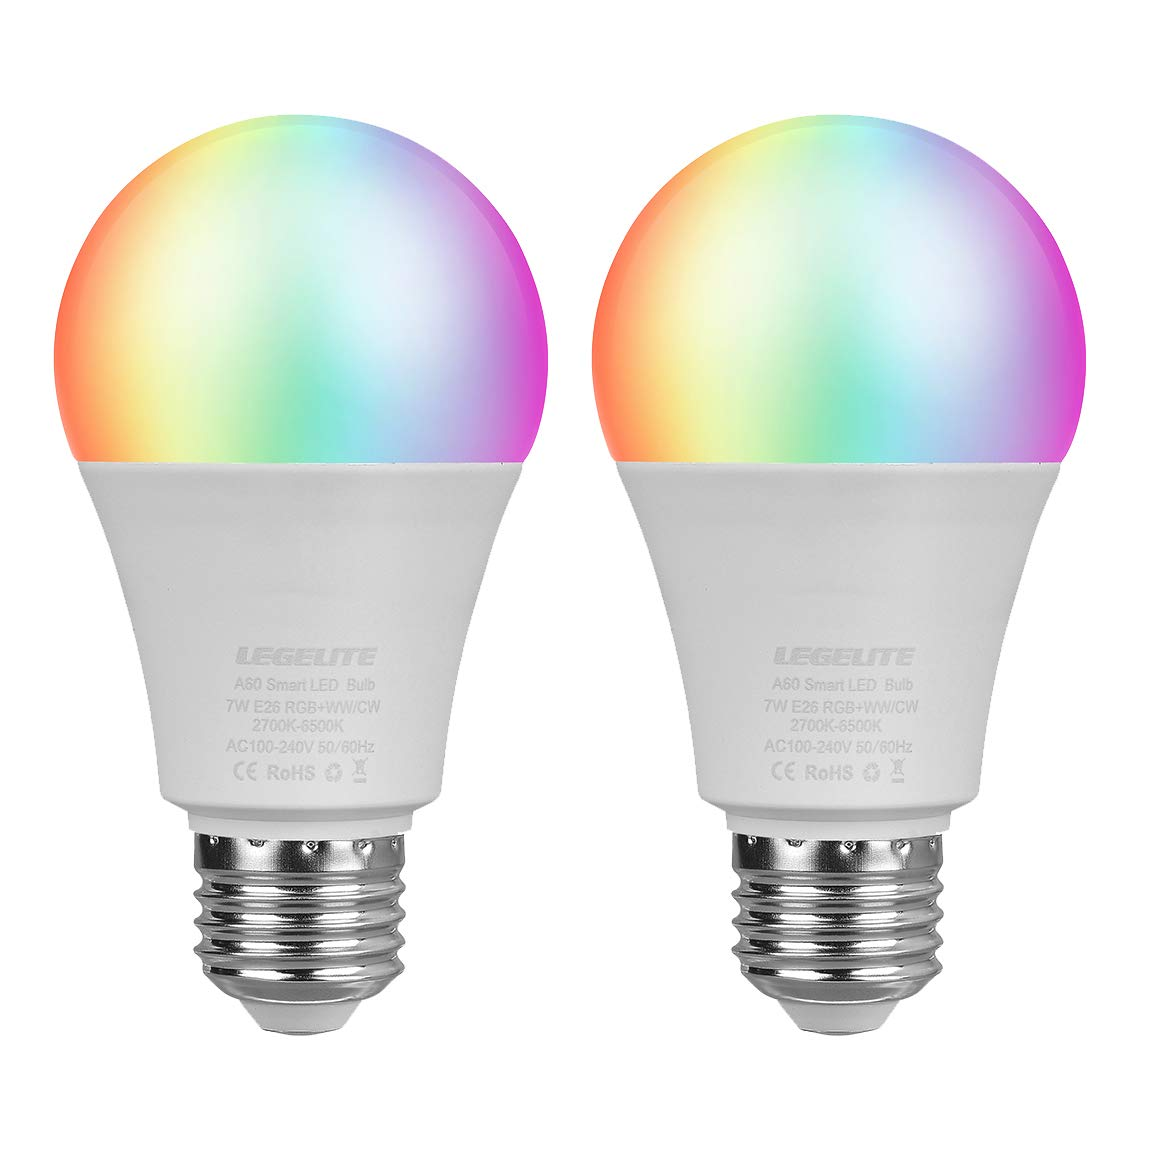 LED WiFi Smart Light Bulb, E26 WiFi Light Bulb Works with Amazon Alexa Google Home and IFTTT, RGBCW Color Changing, Cool White and Warm White Dimmable, No Hub Required, A19 60W Equivalent (2 Pack)